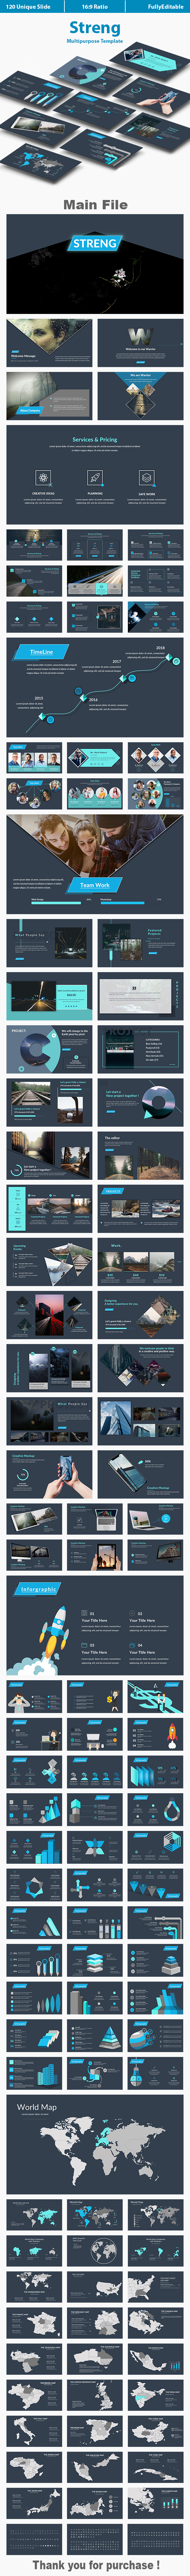 Streng Multipurpose Google Slide template - Google Slides Presentation Templates